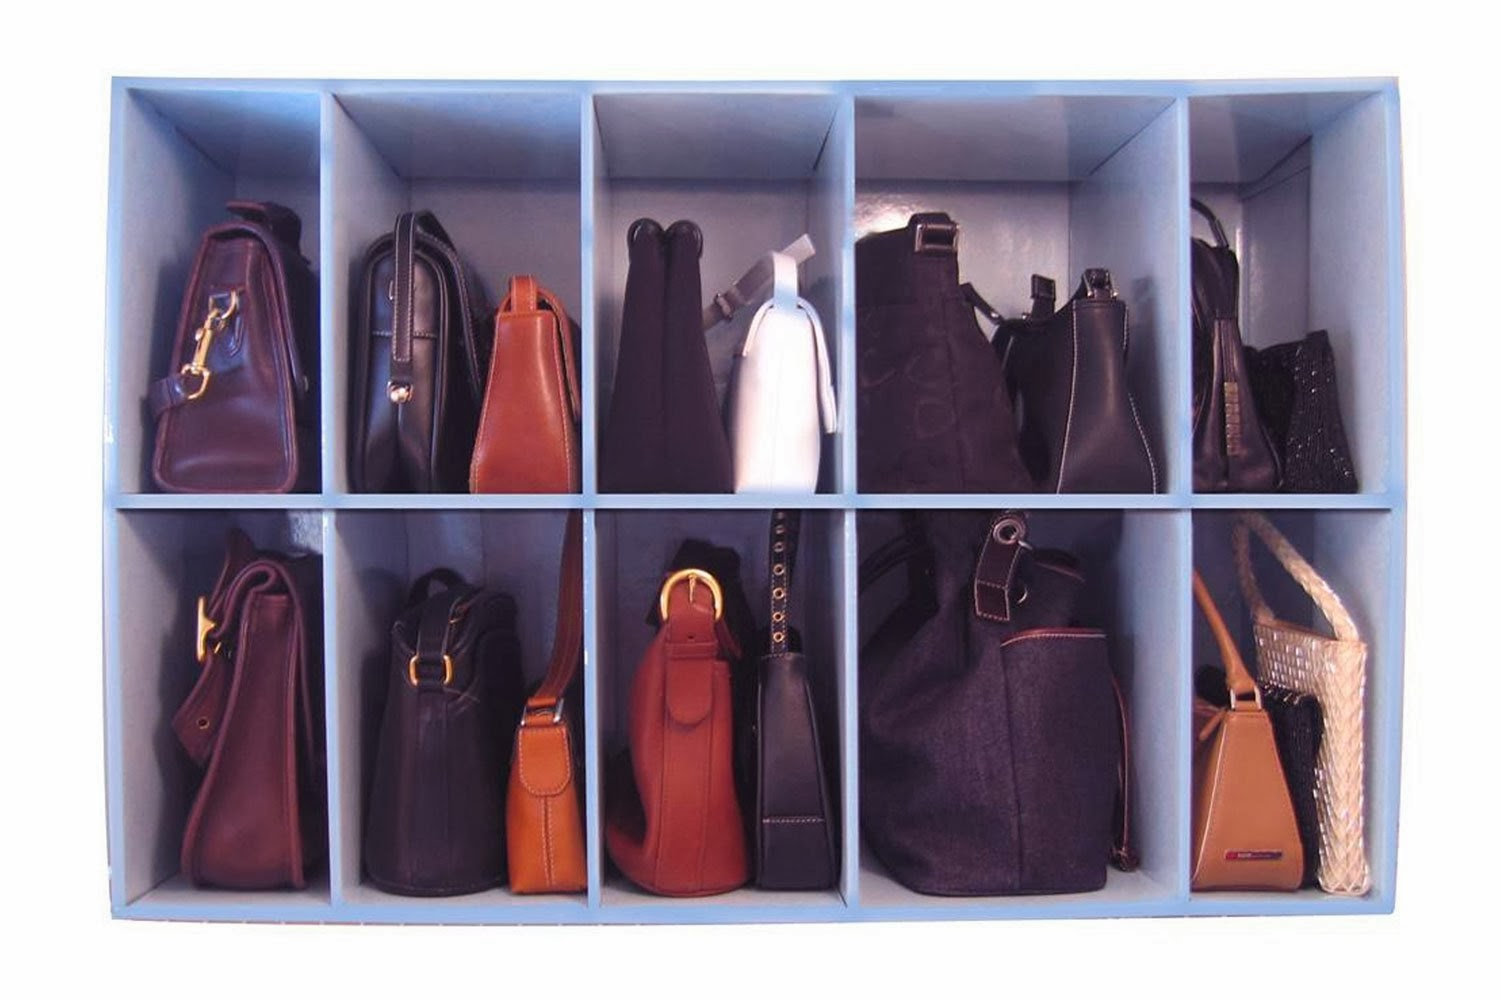 11 ways to organize your purse organizing made fun 11 - Closet organizer for purses ...